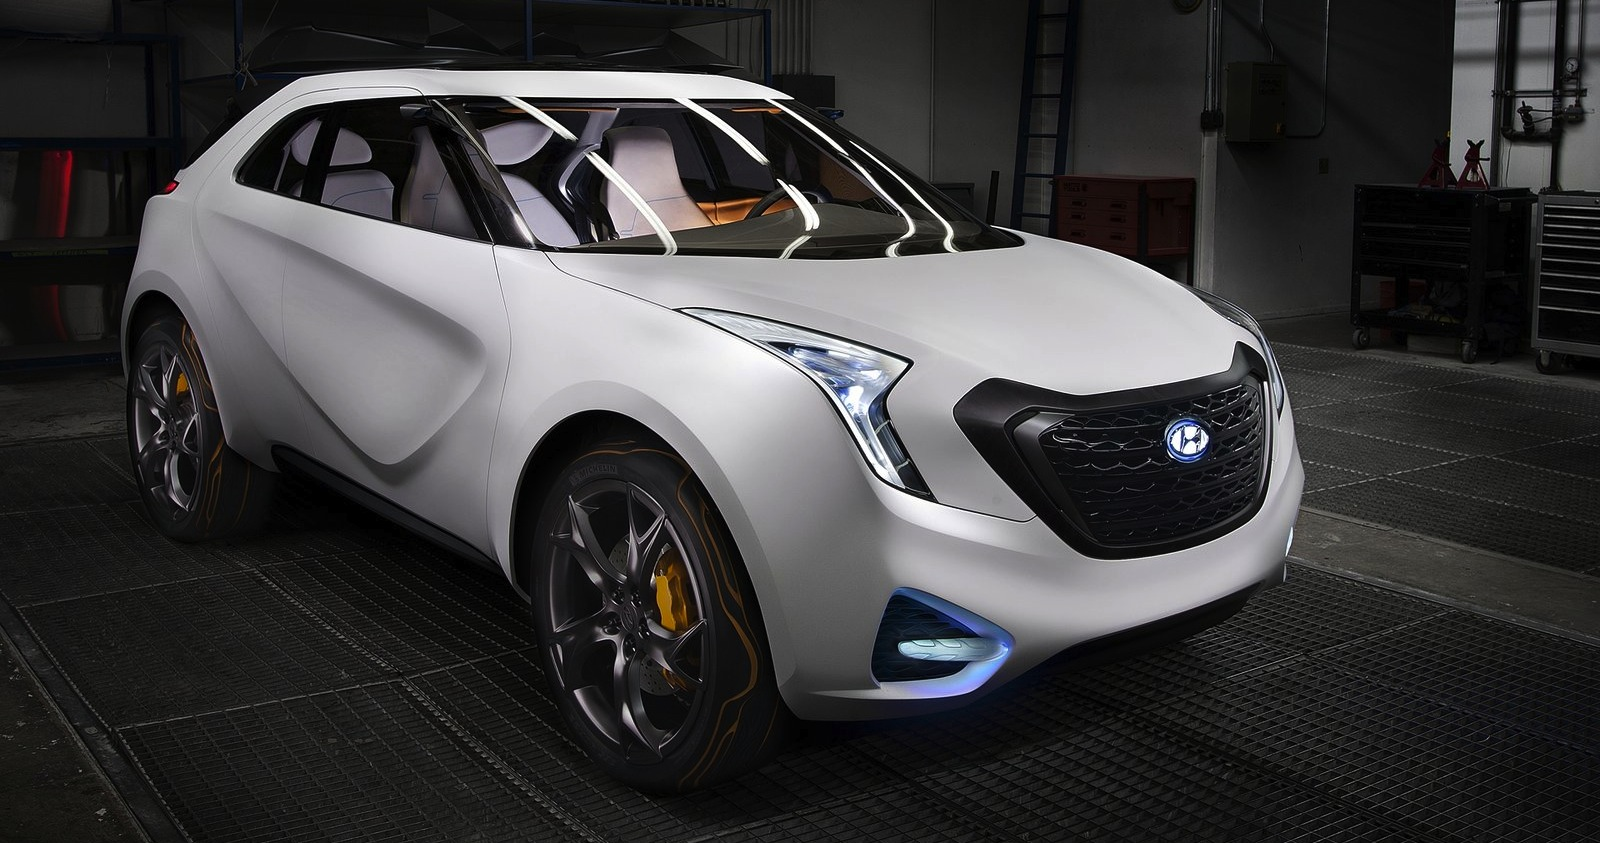 Hyundai planning edgy dynamic juke rival for 2017 report photos 1 of 3